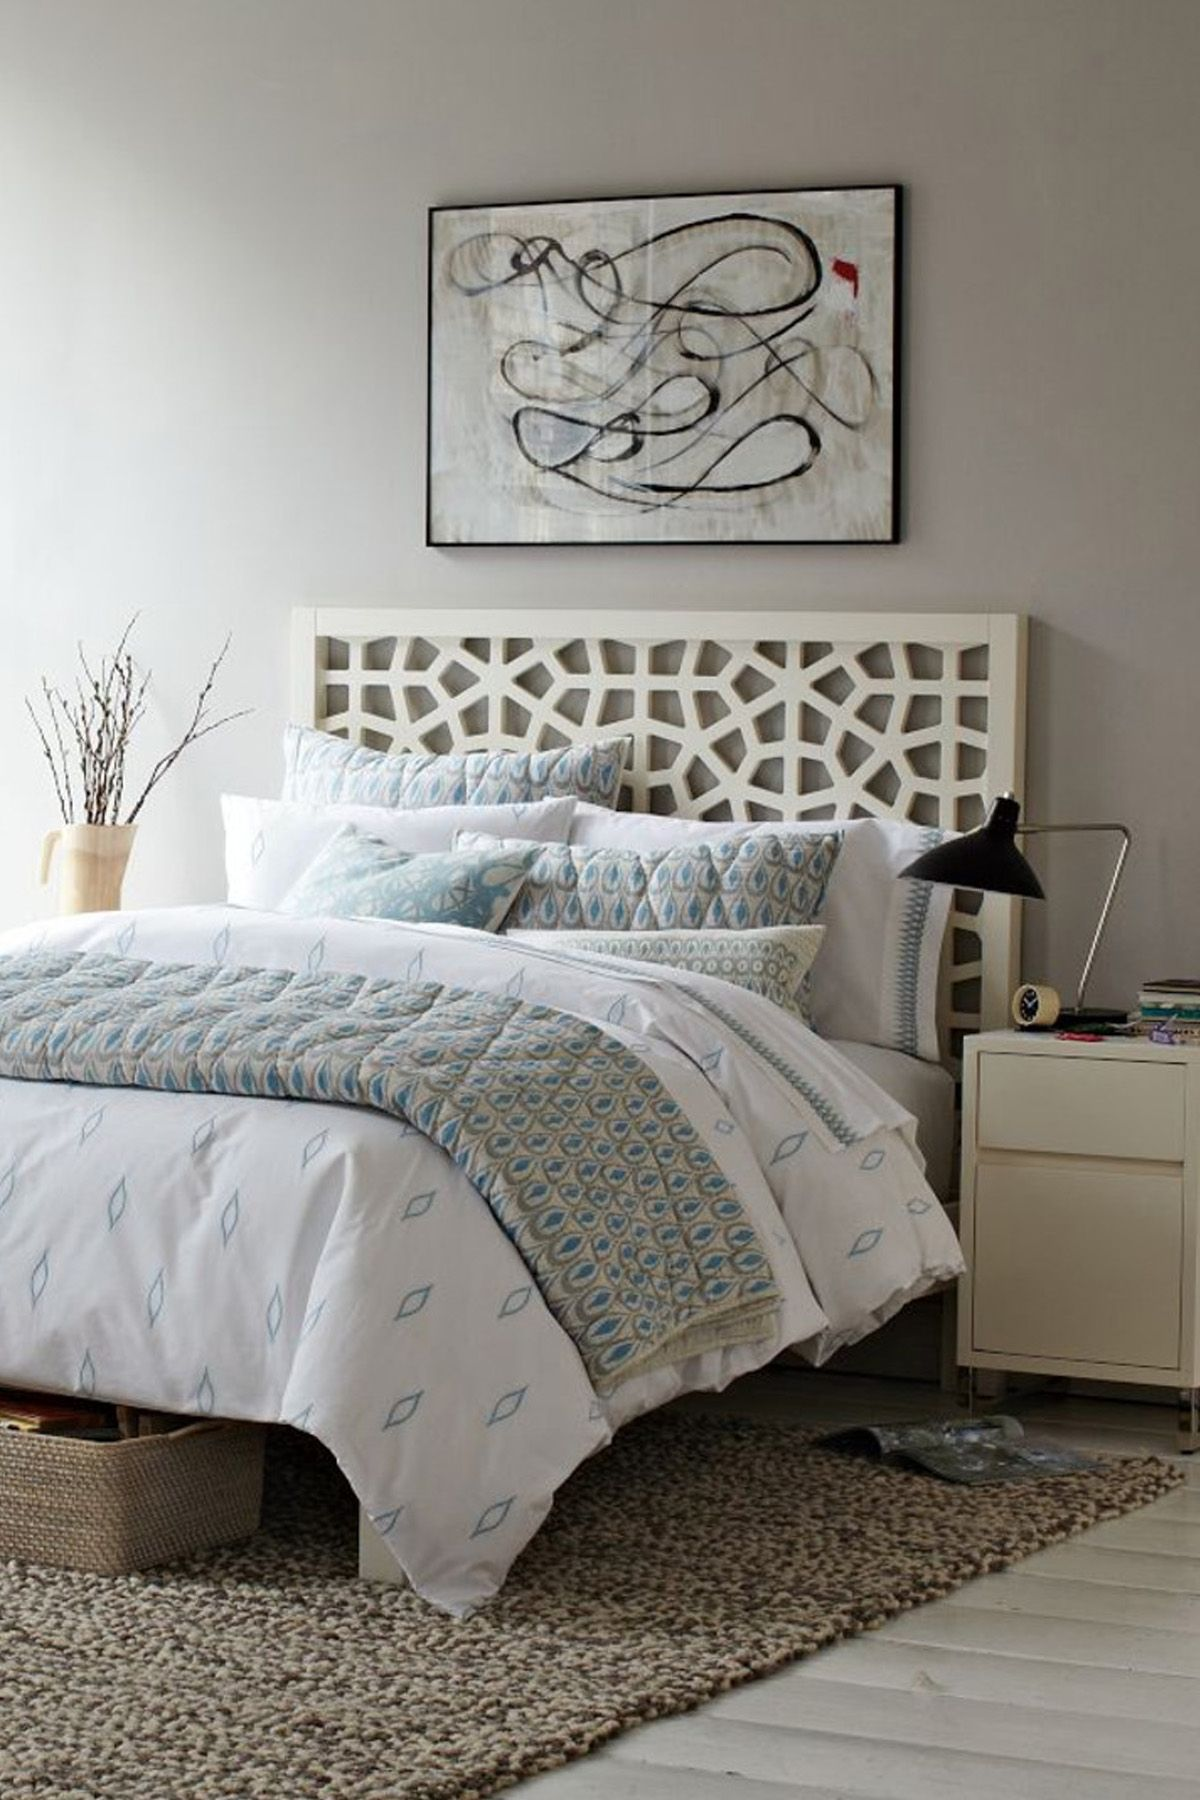 20 Best Headboard Ideas Unique Designs For Bed Headboards